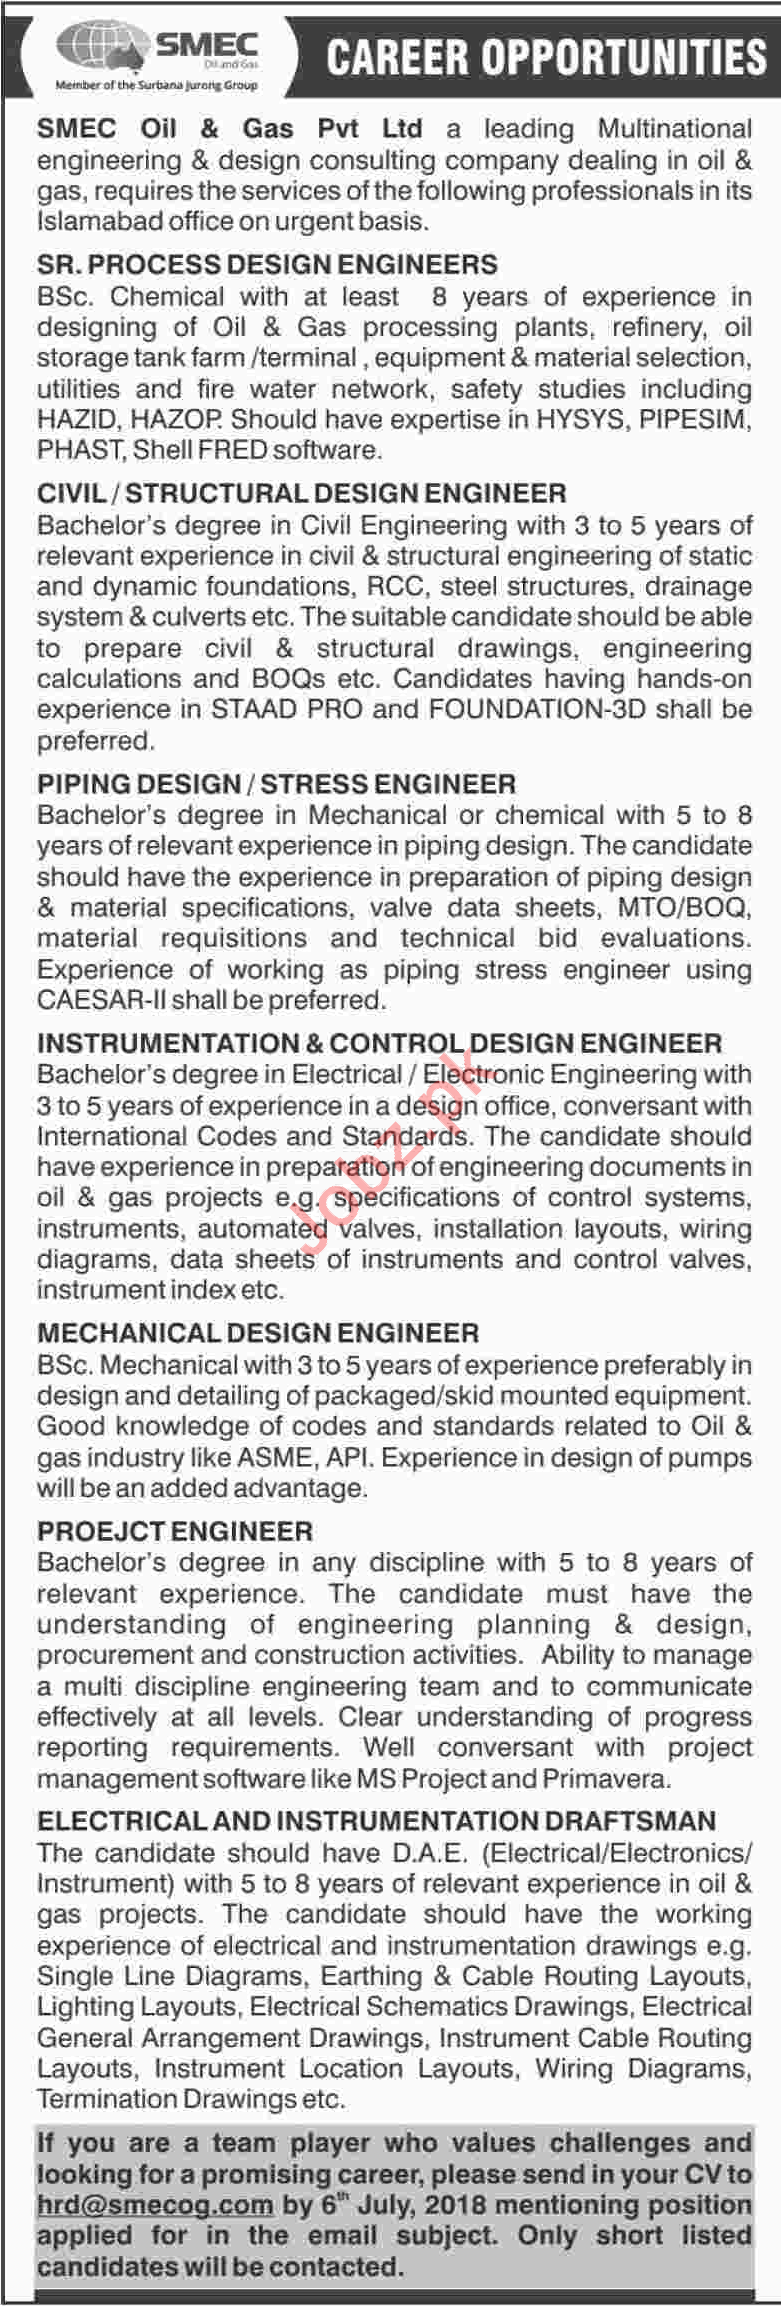 Engineers at SMEC Oil and Gas Pvt Ltd SMECOG